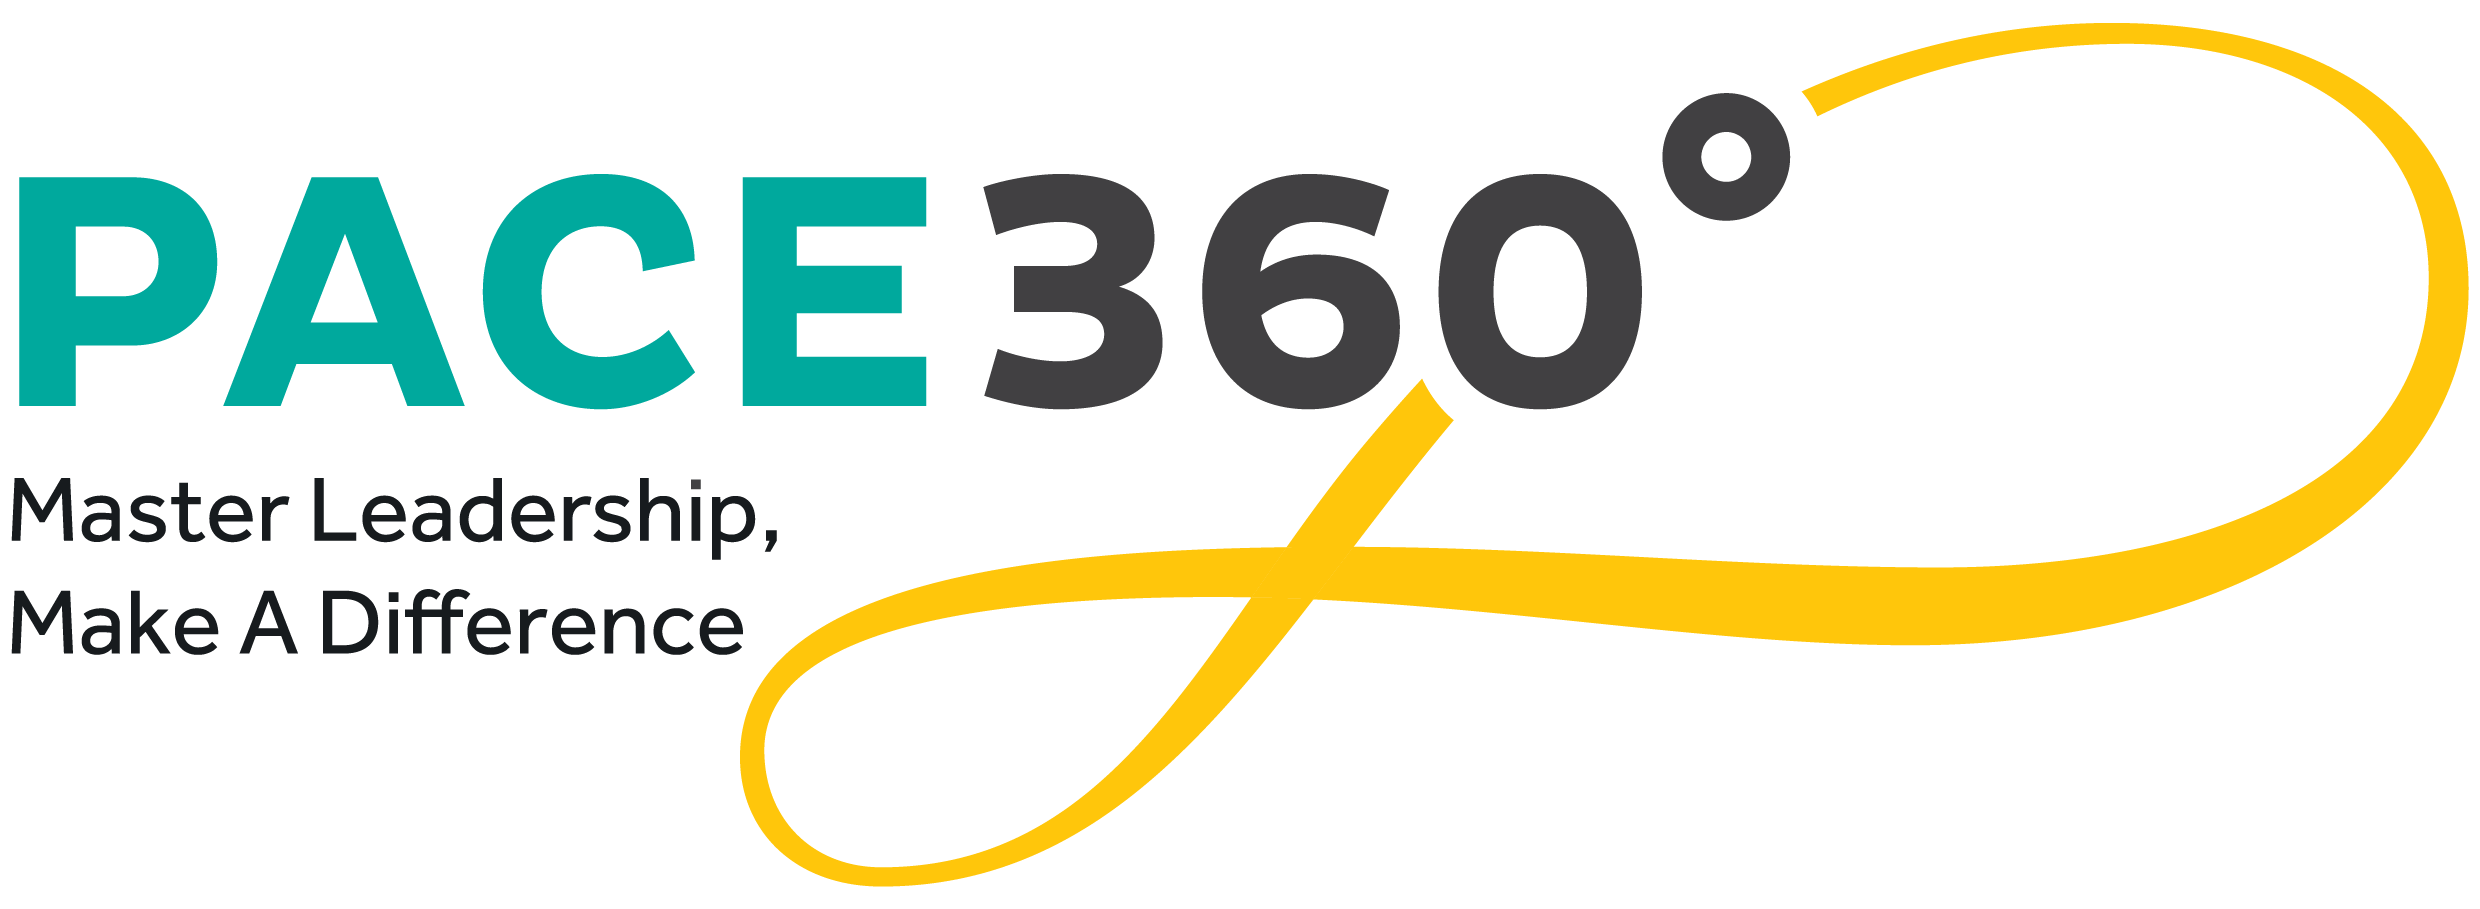 PACE360Logo3.png